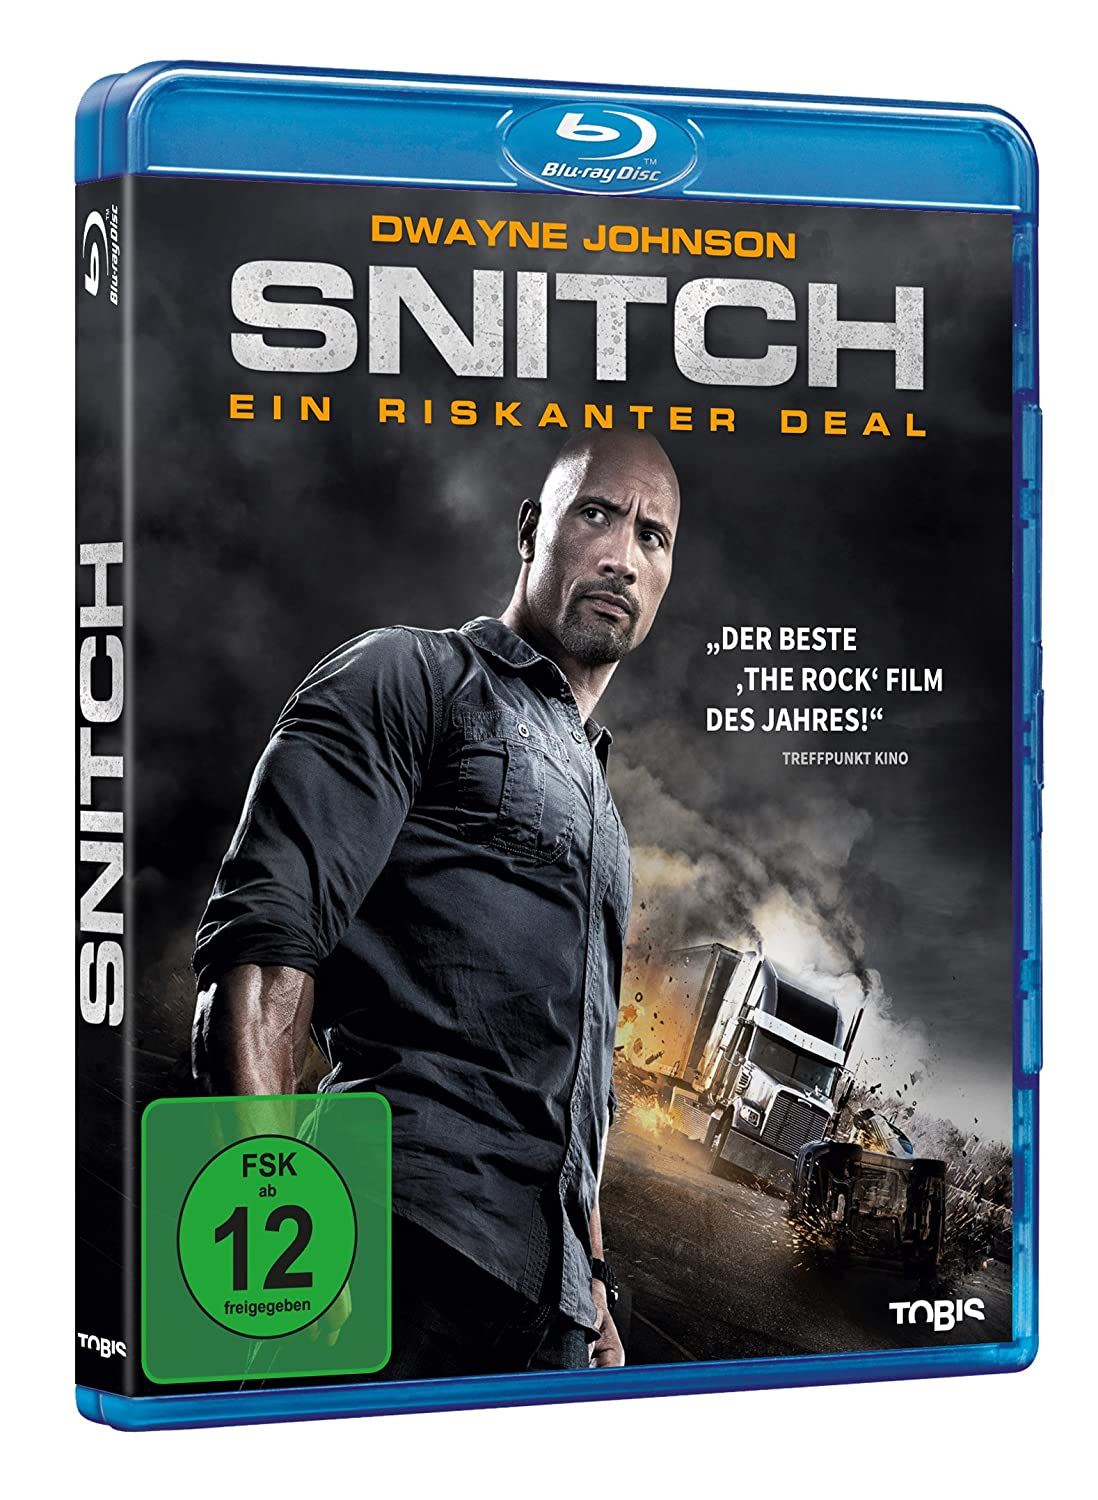 Snitch - Ein riskanter Deal [Blu-ray] 9,90€